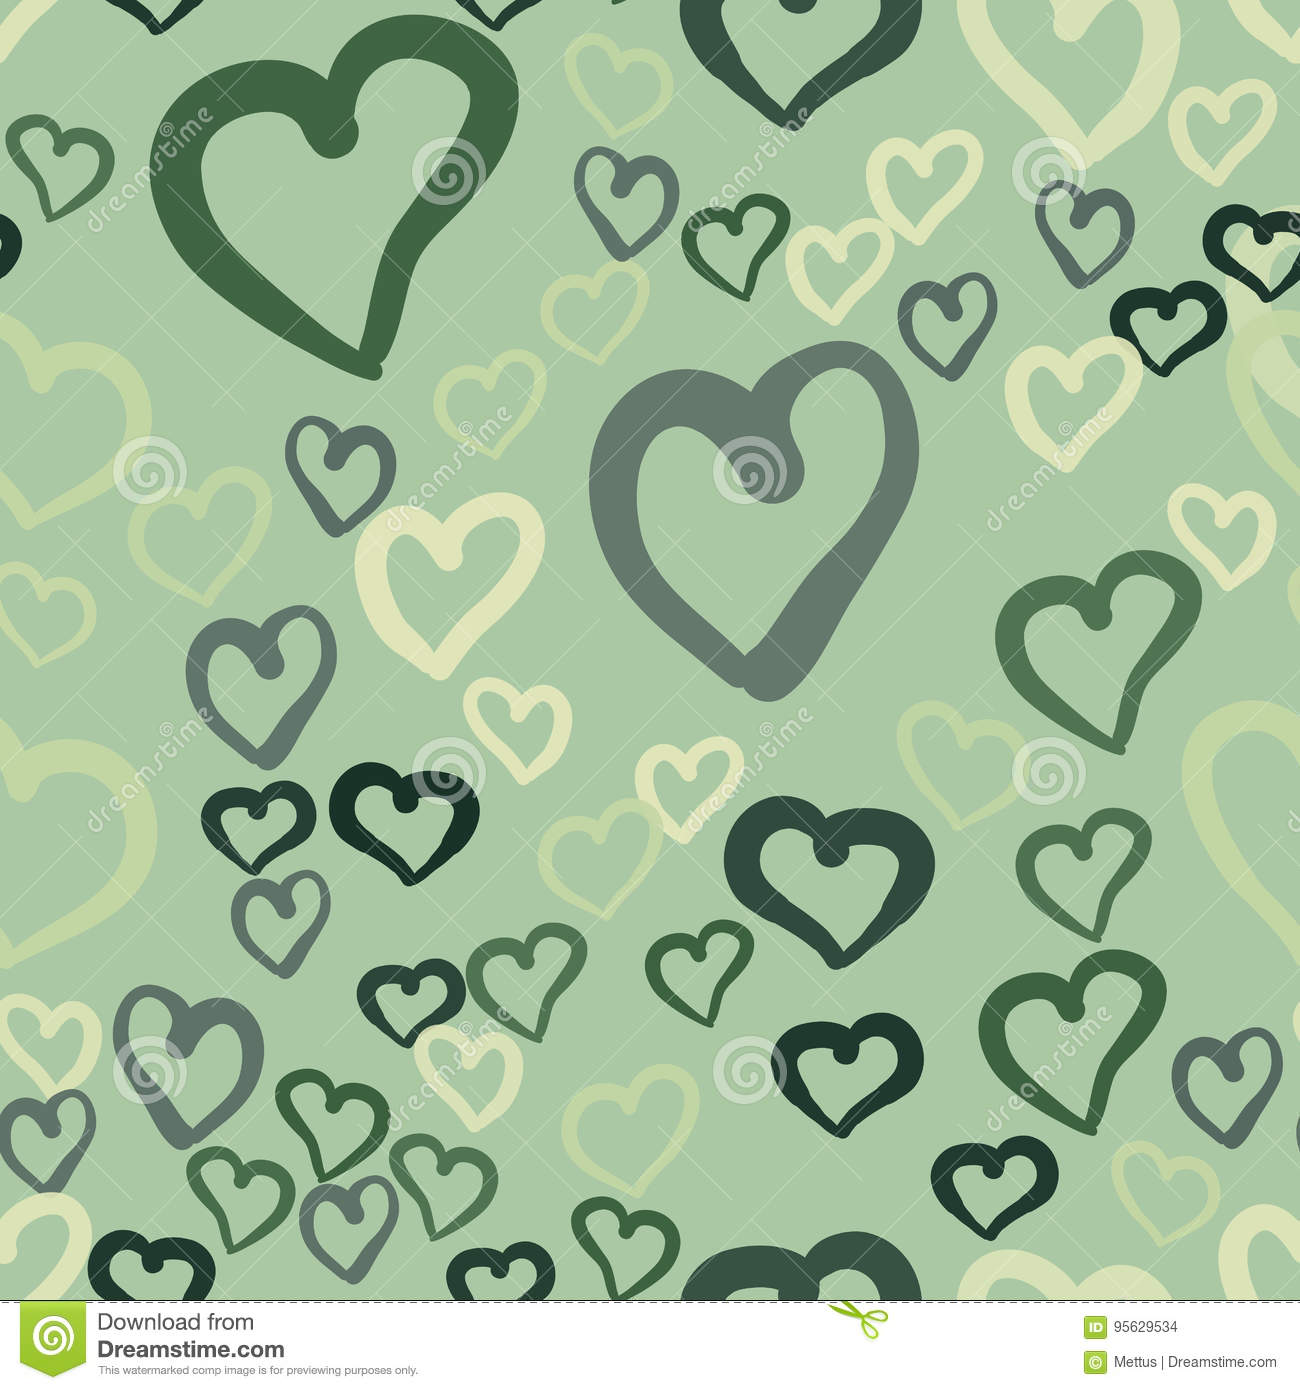 Love Theme Design, Hearts Valentine`s Day Seamless Pattern Wallpaper